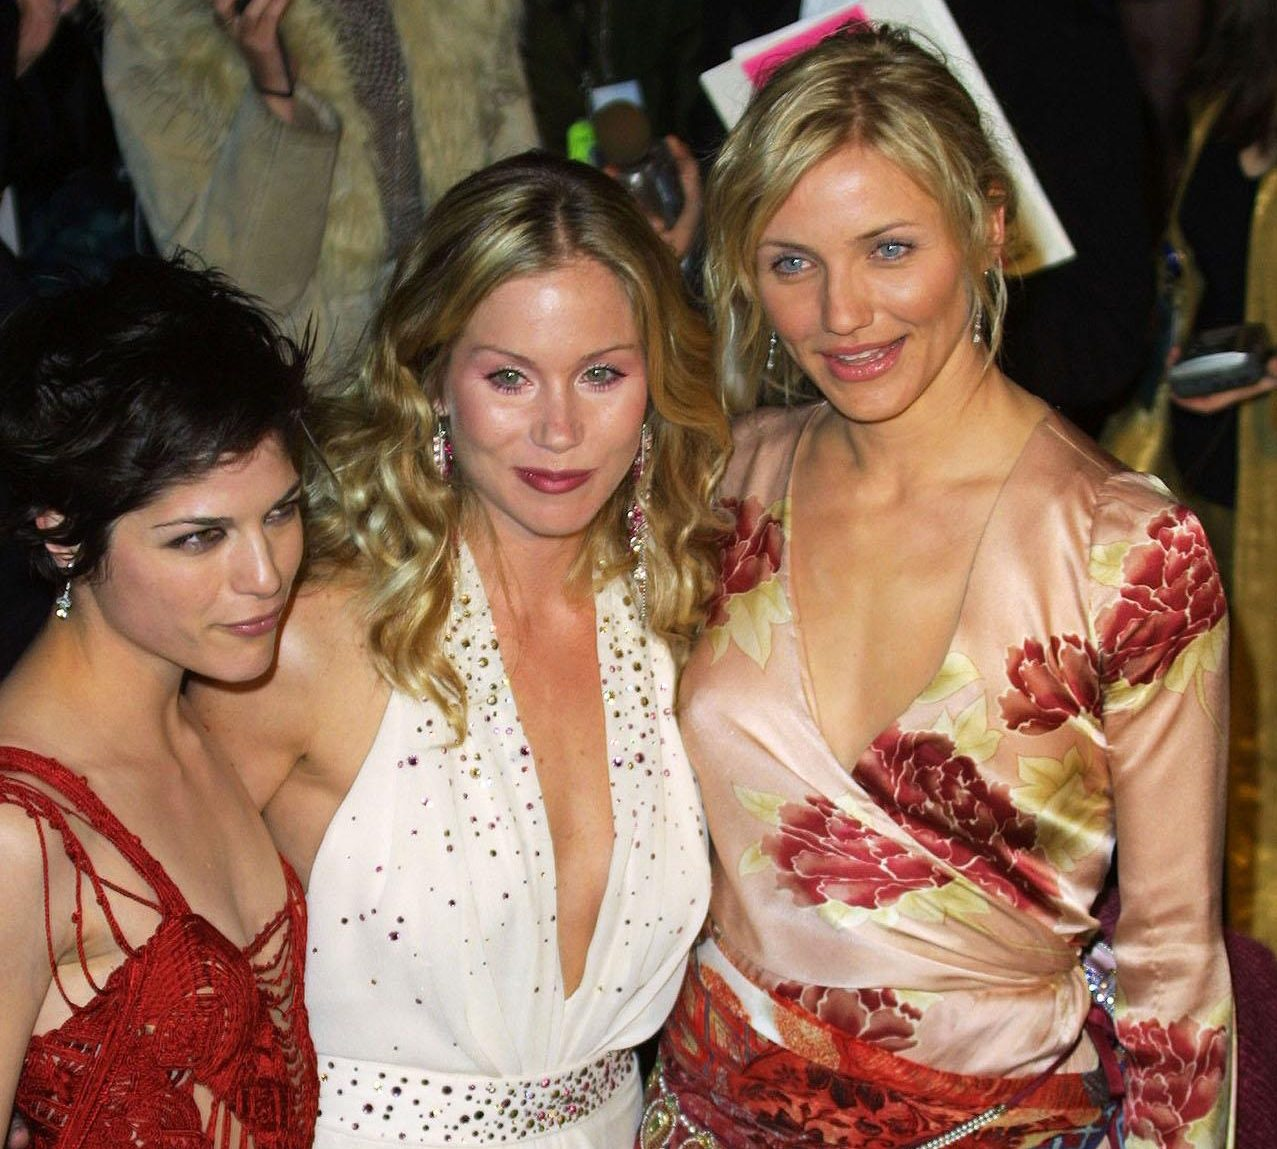 Selma Blair: I was joking about Cameron Diaz retiring